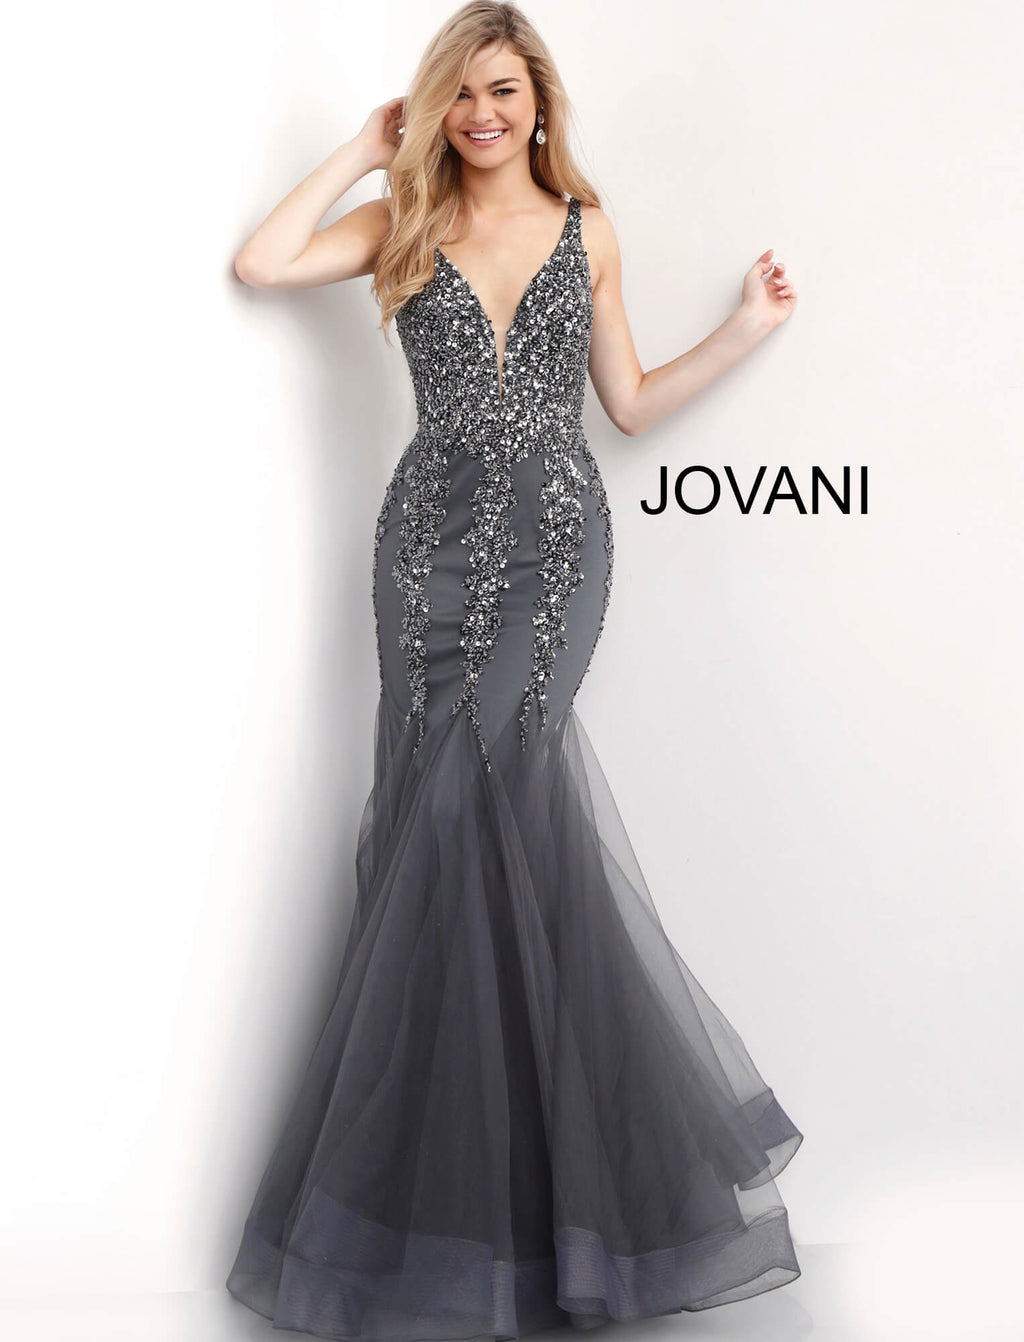 JOVANI 63700 Beaded Mermaid Evening Dress - CYC Boutique